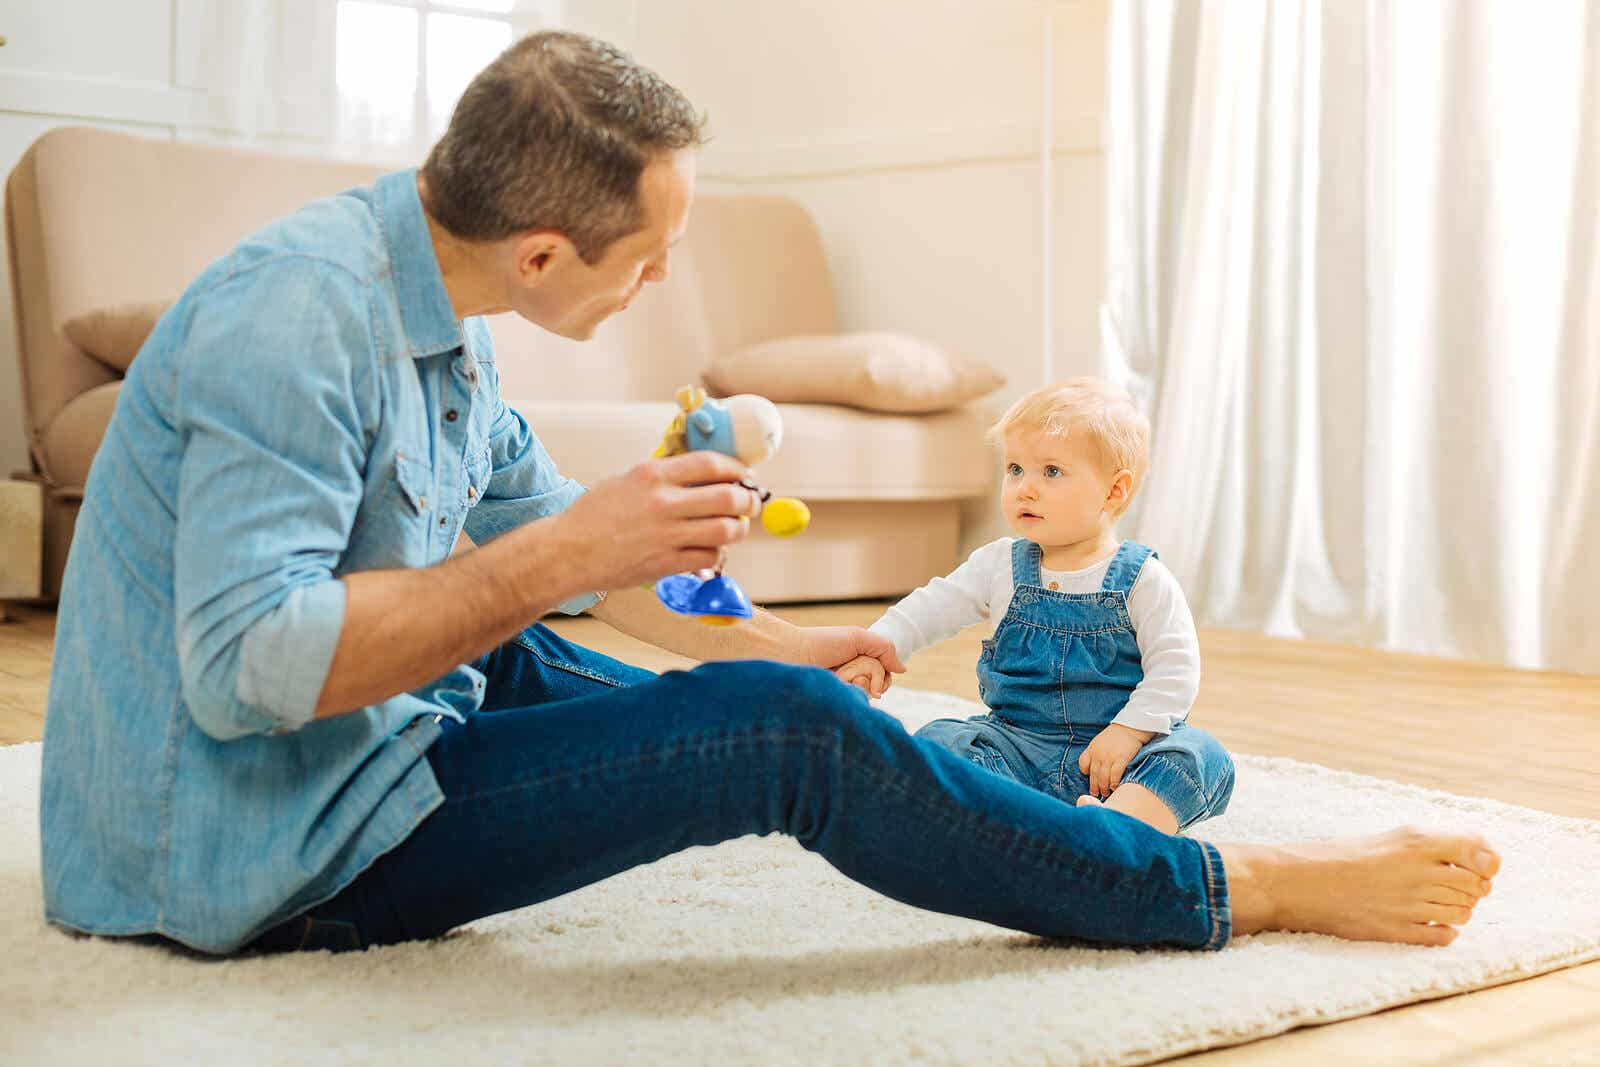 A father sitting on the floor and communicating with his baby girl.